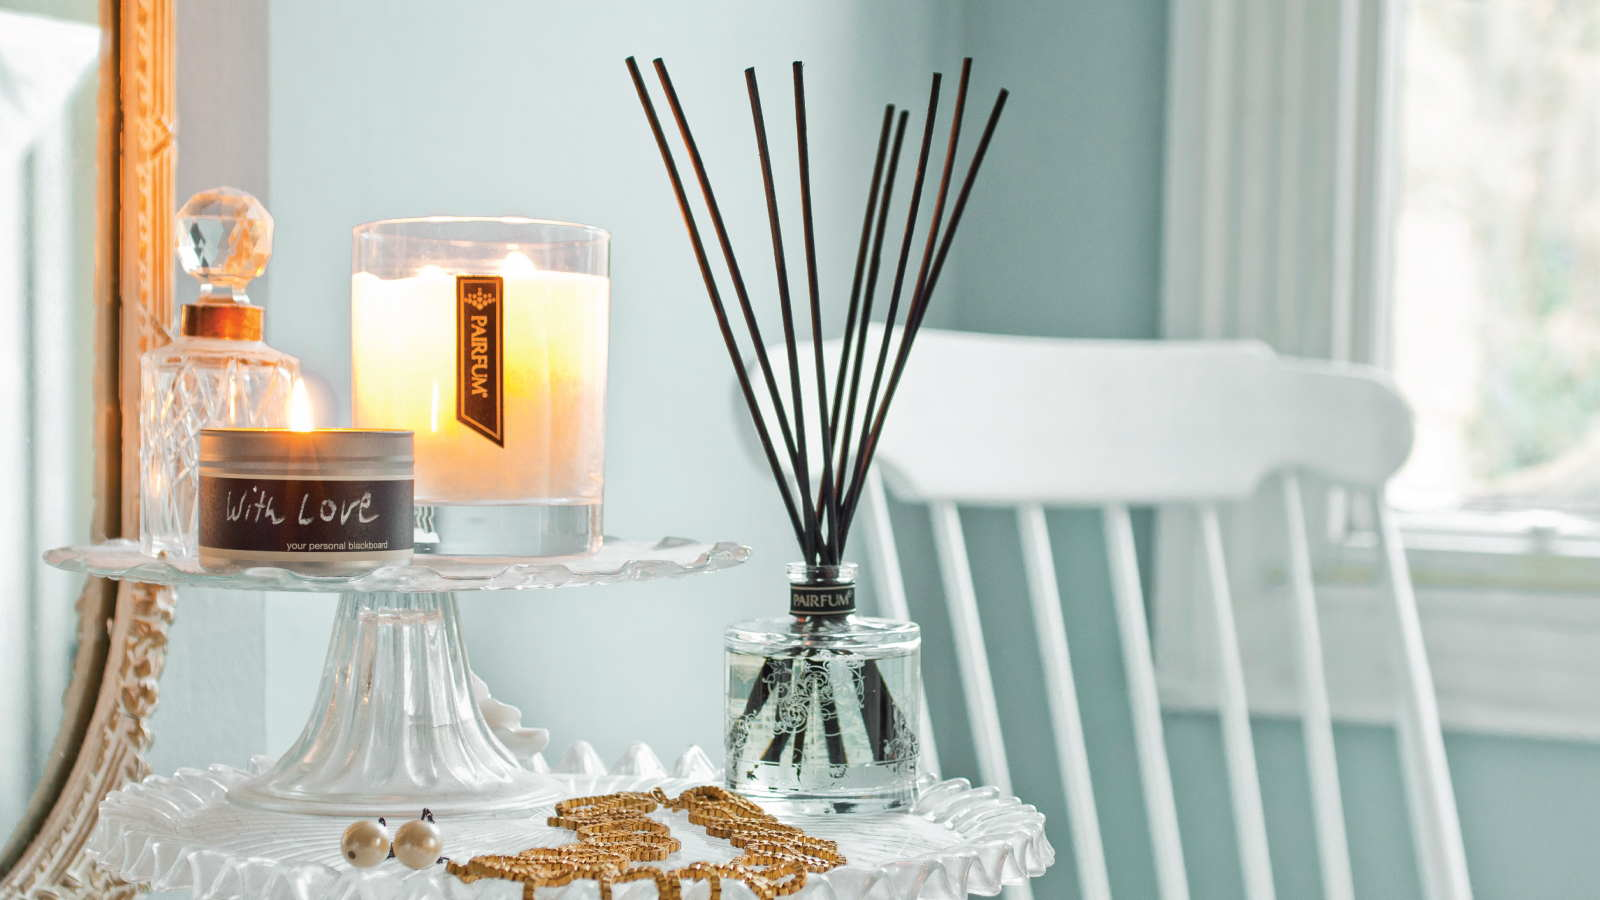 Lifestyle Living Room Natural Reed Diffuser Fragrance Candle 16 9